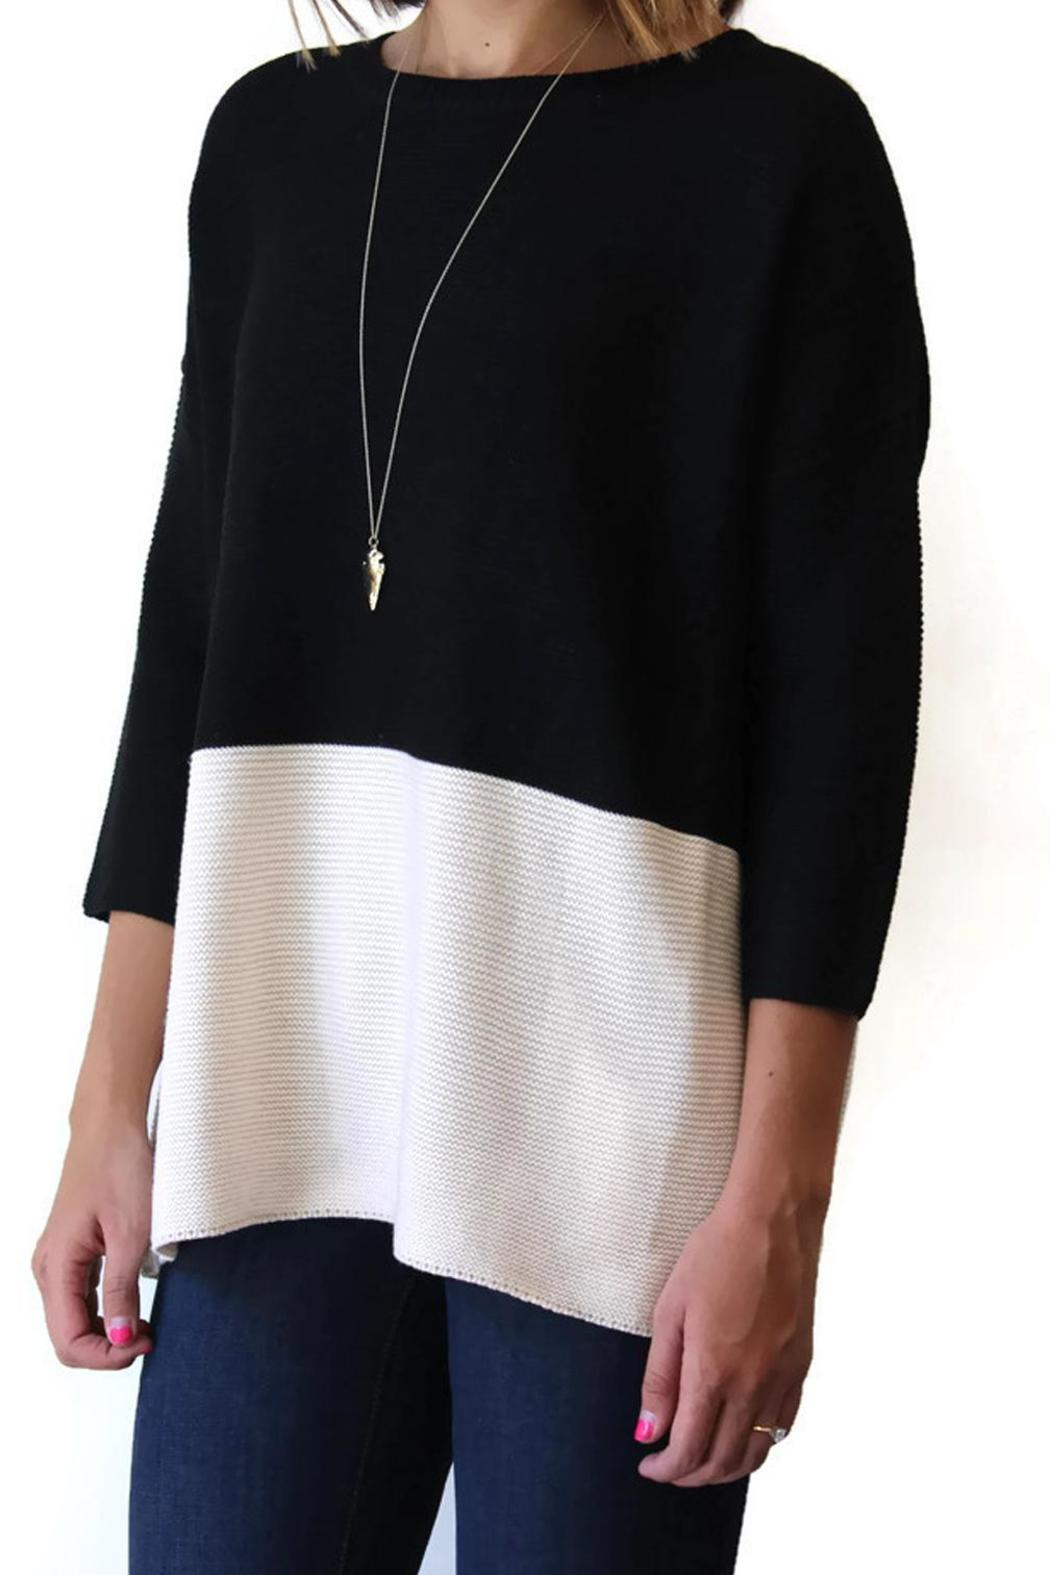 Kerisma Color Block Sweater from Pennsylvania by Flirt Women's ...